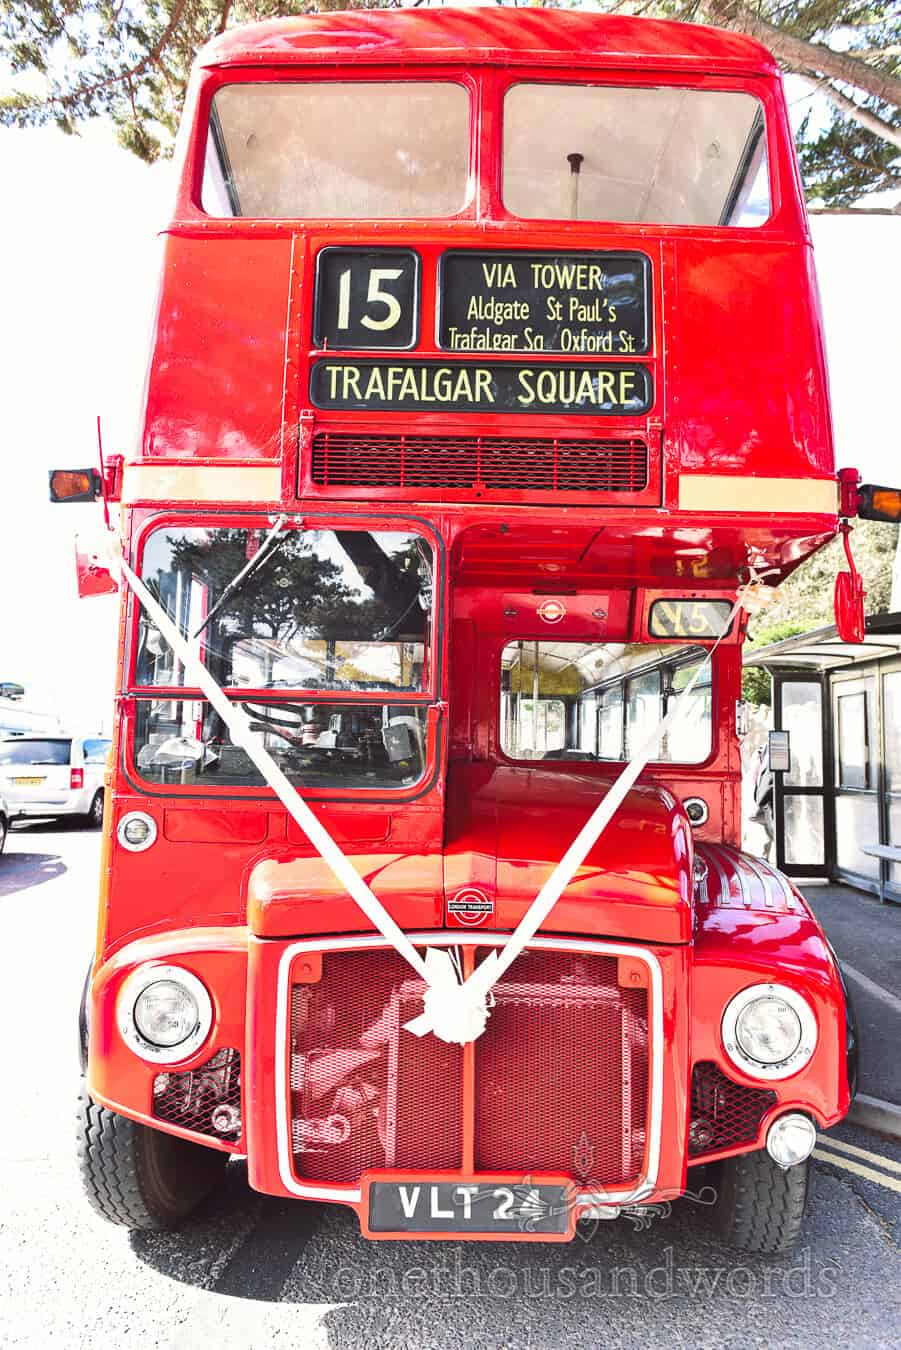 Wedding London bus